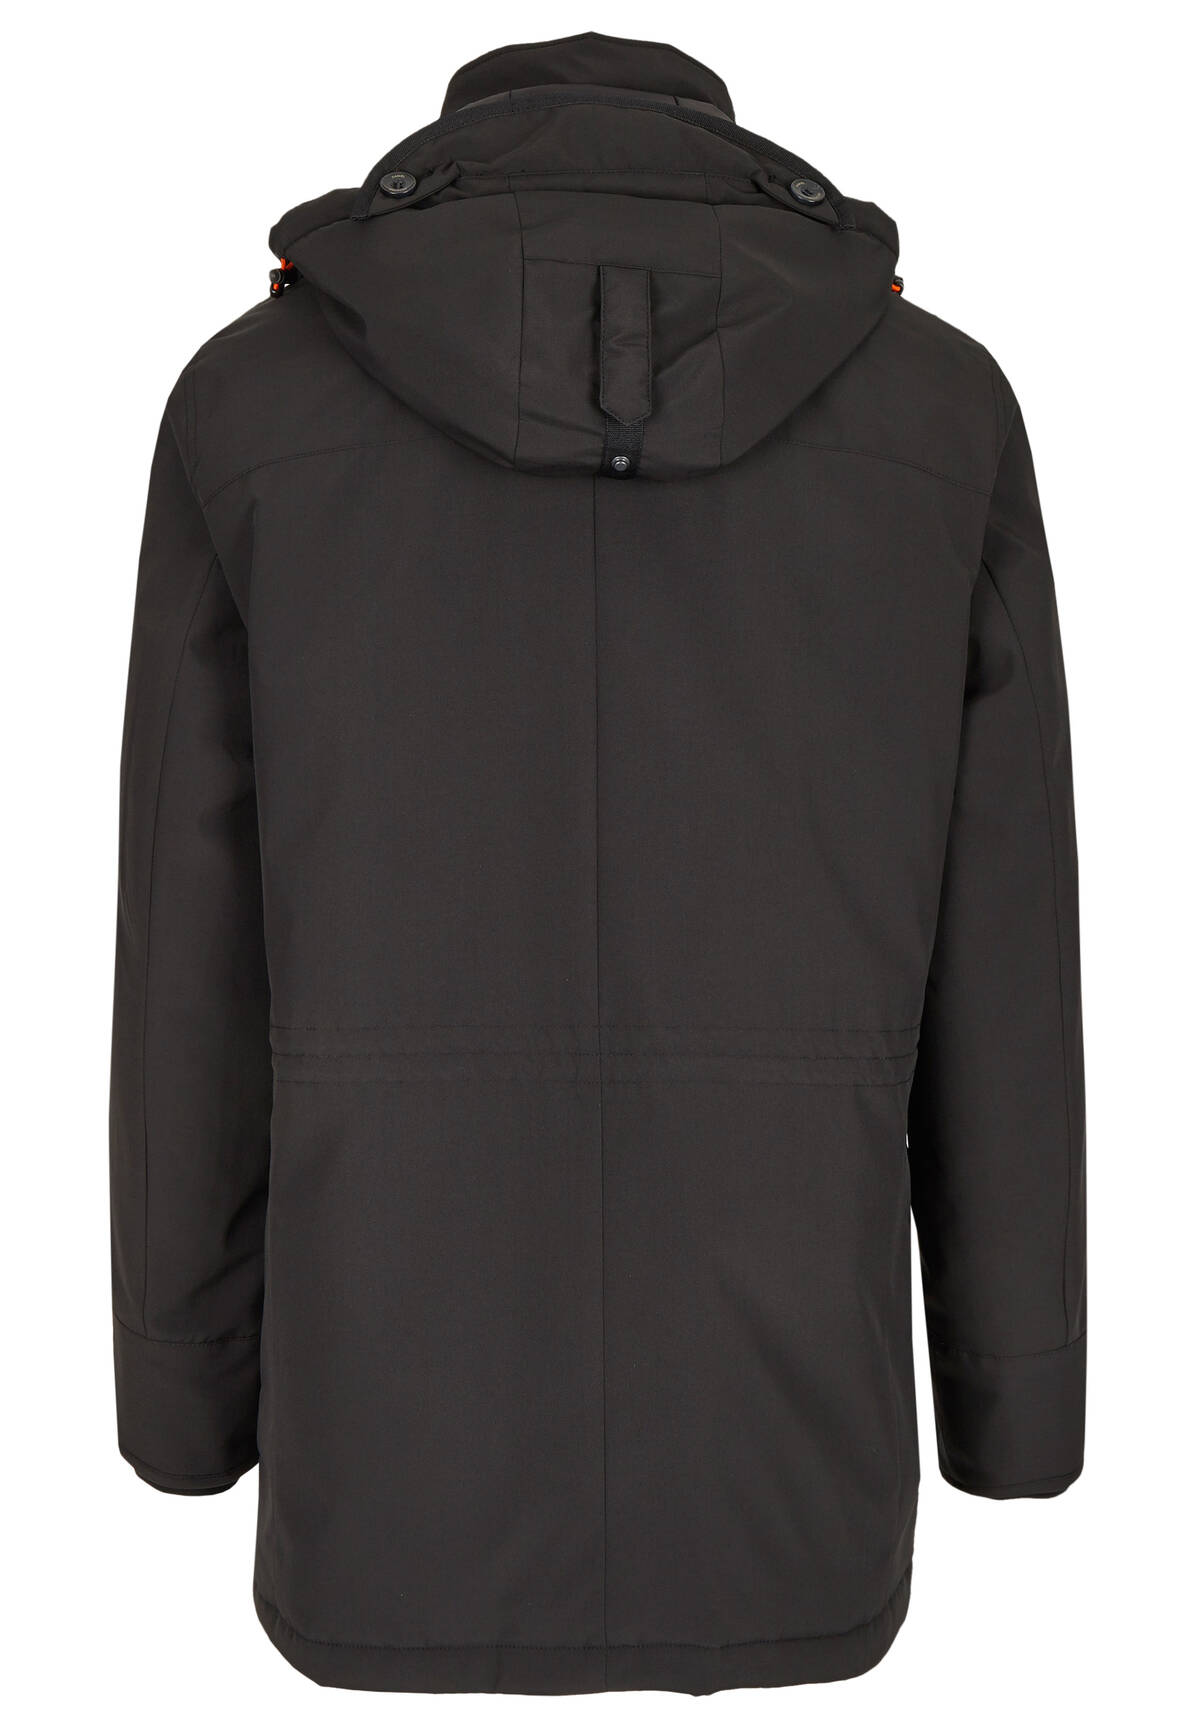 DH-XTECH Thermal Booster Jacke / PARKA